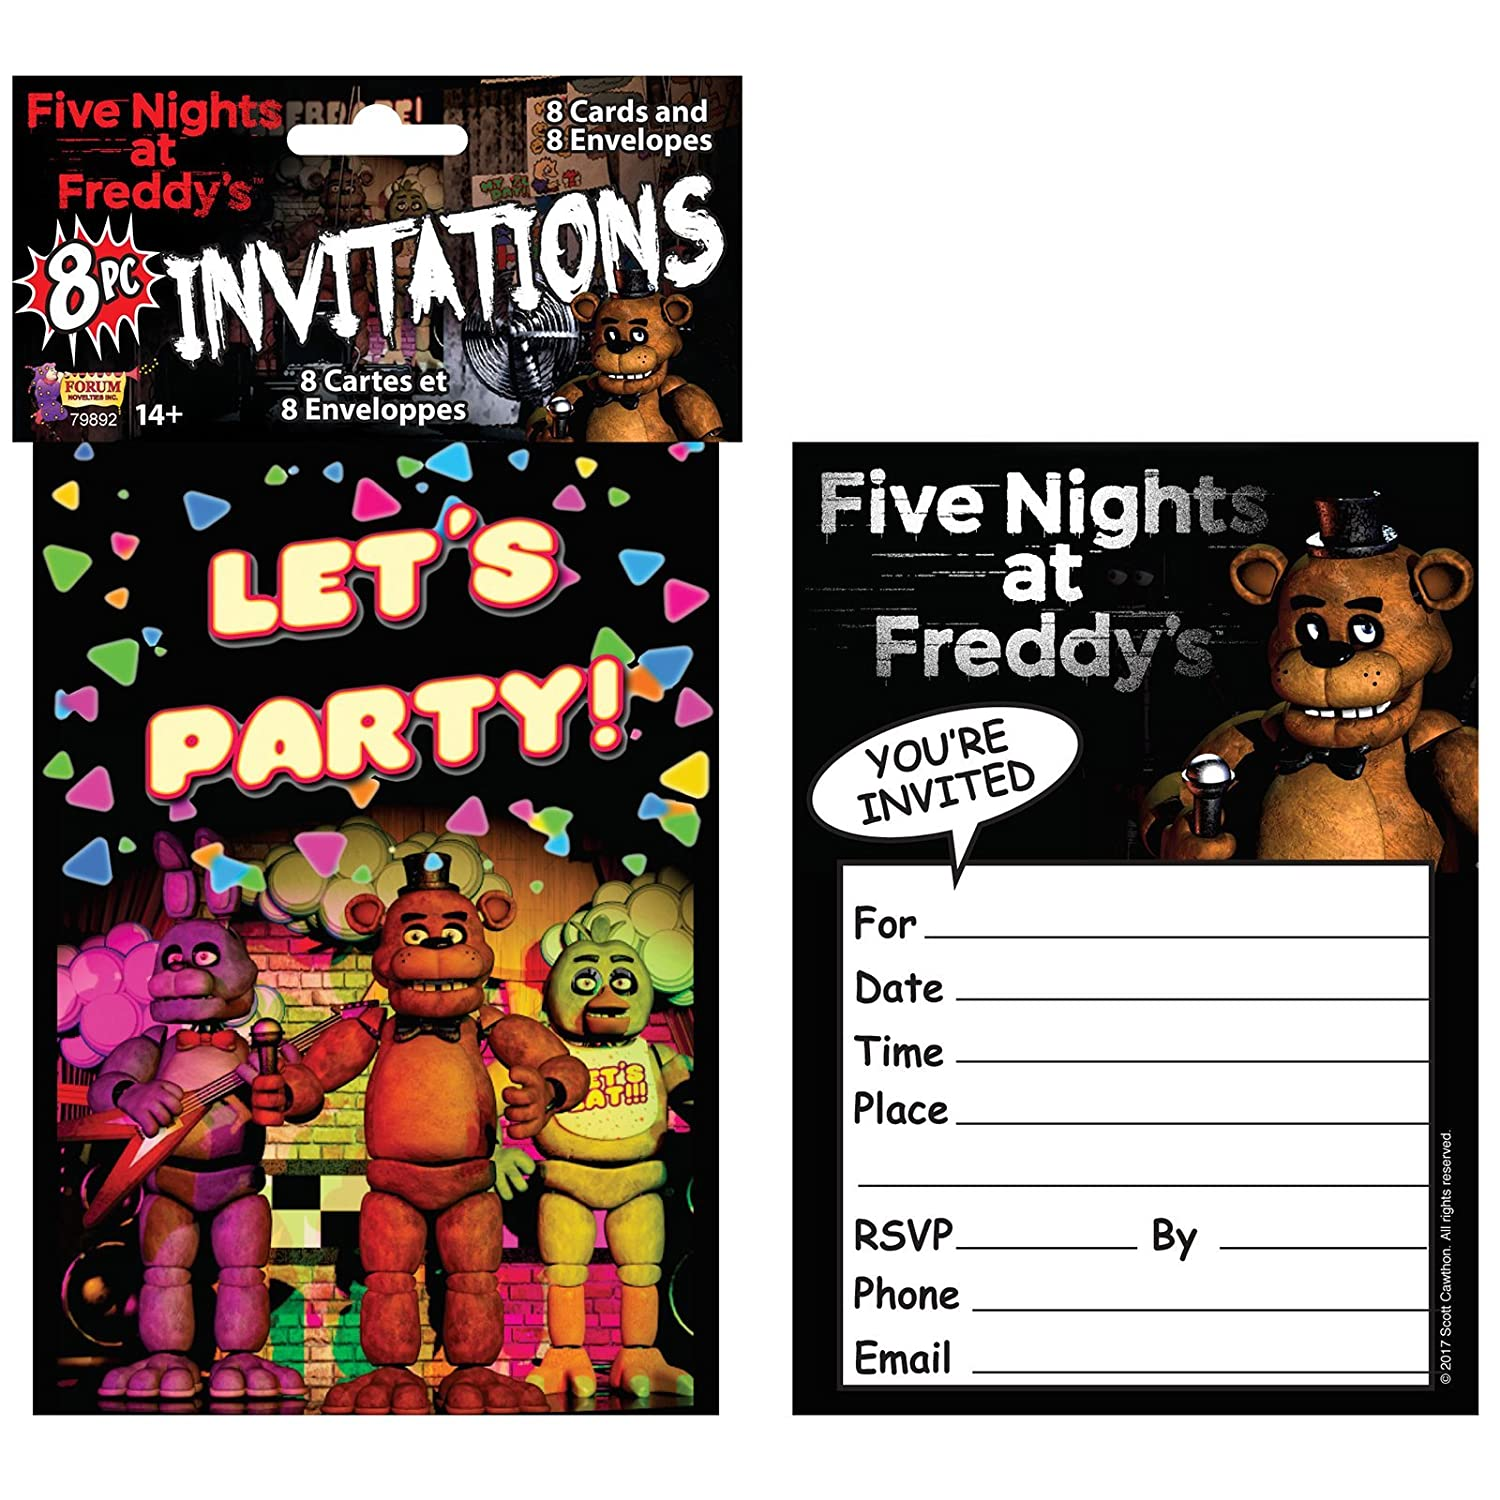 BUYSEASONS Five Nights At Freddys Birthday Party Invitations 8 Pack Amazoncouk Toys Games